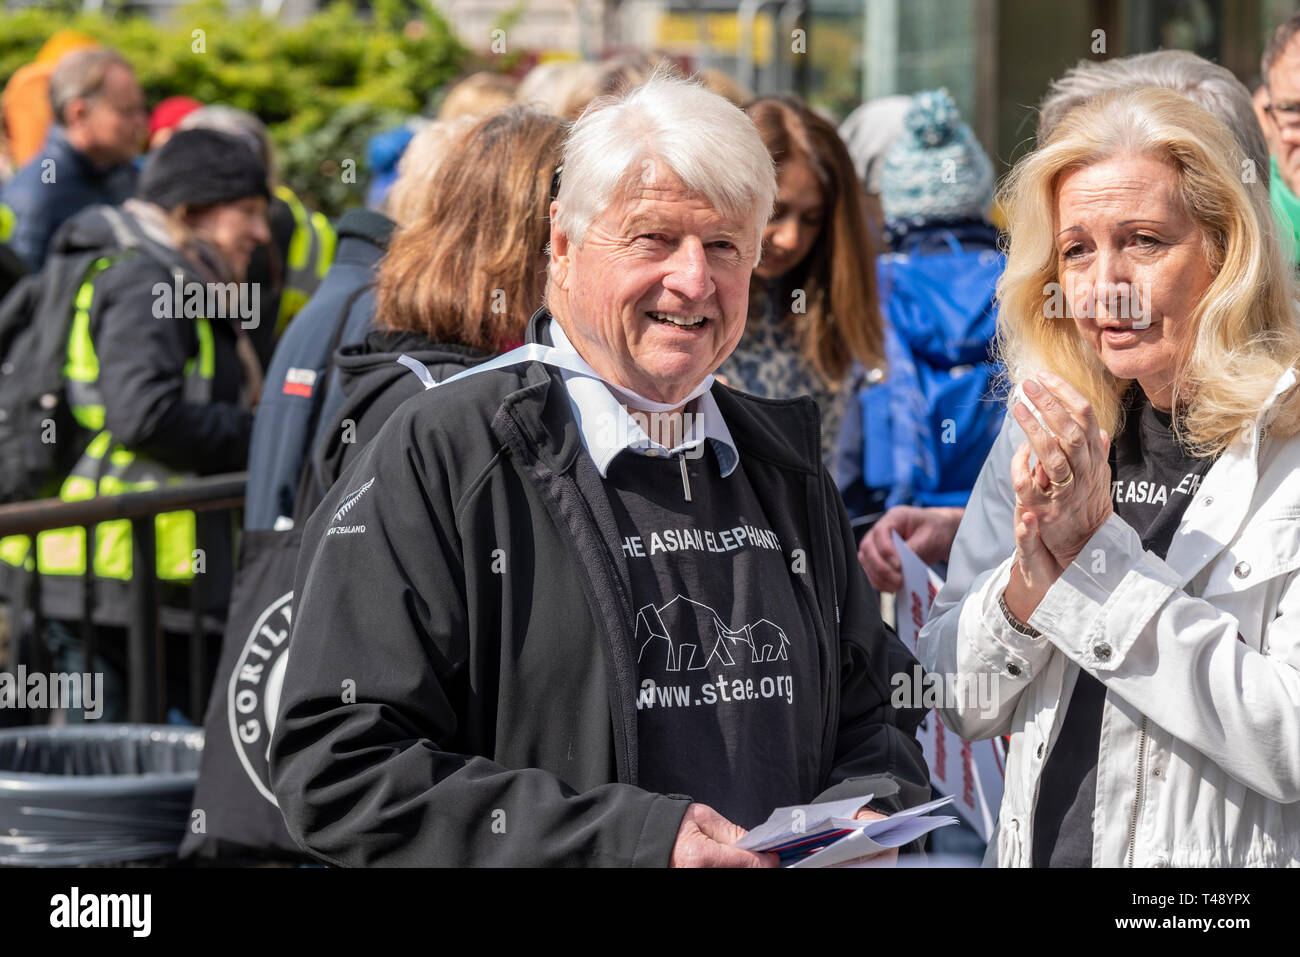 Stanley Johnson at a stop trophy hunting and ivory trade protest rally, London, UK - Stock Image